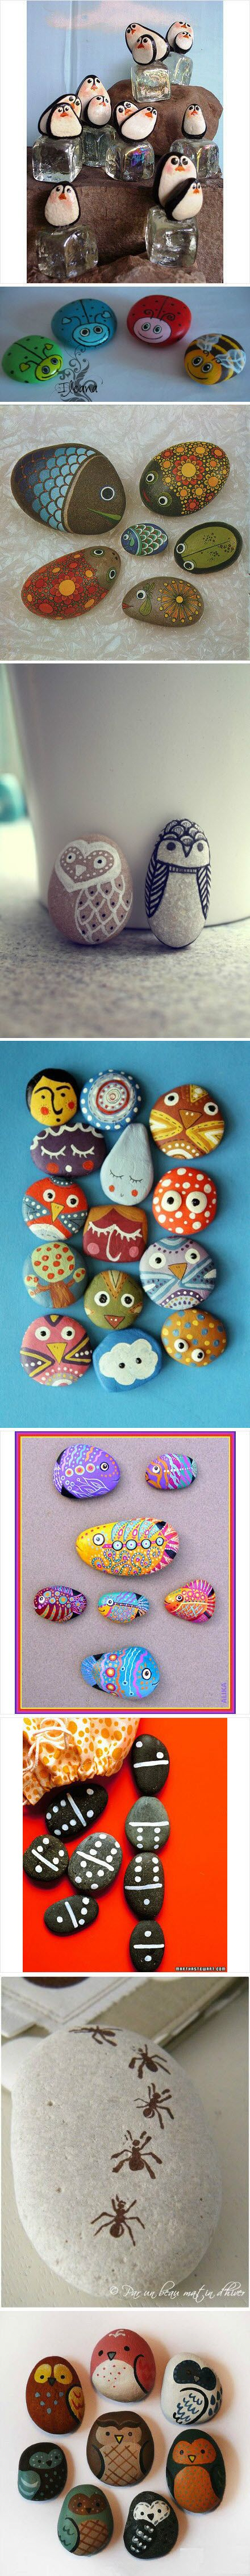 All sorts of painted rock ideas. I used to paint rocks when